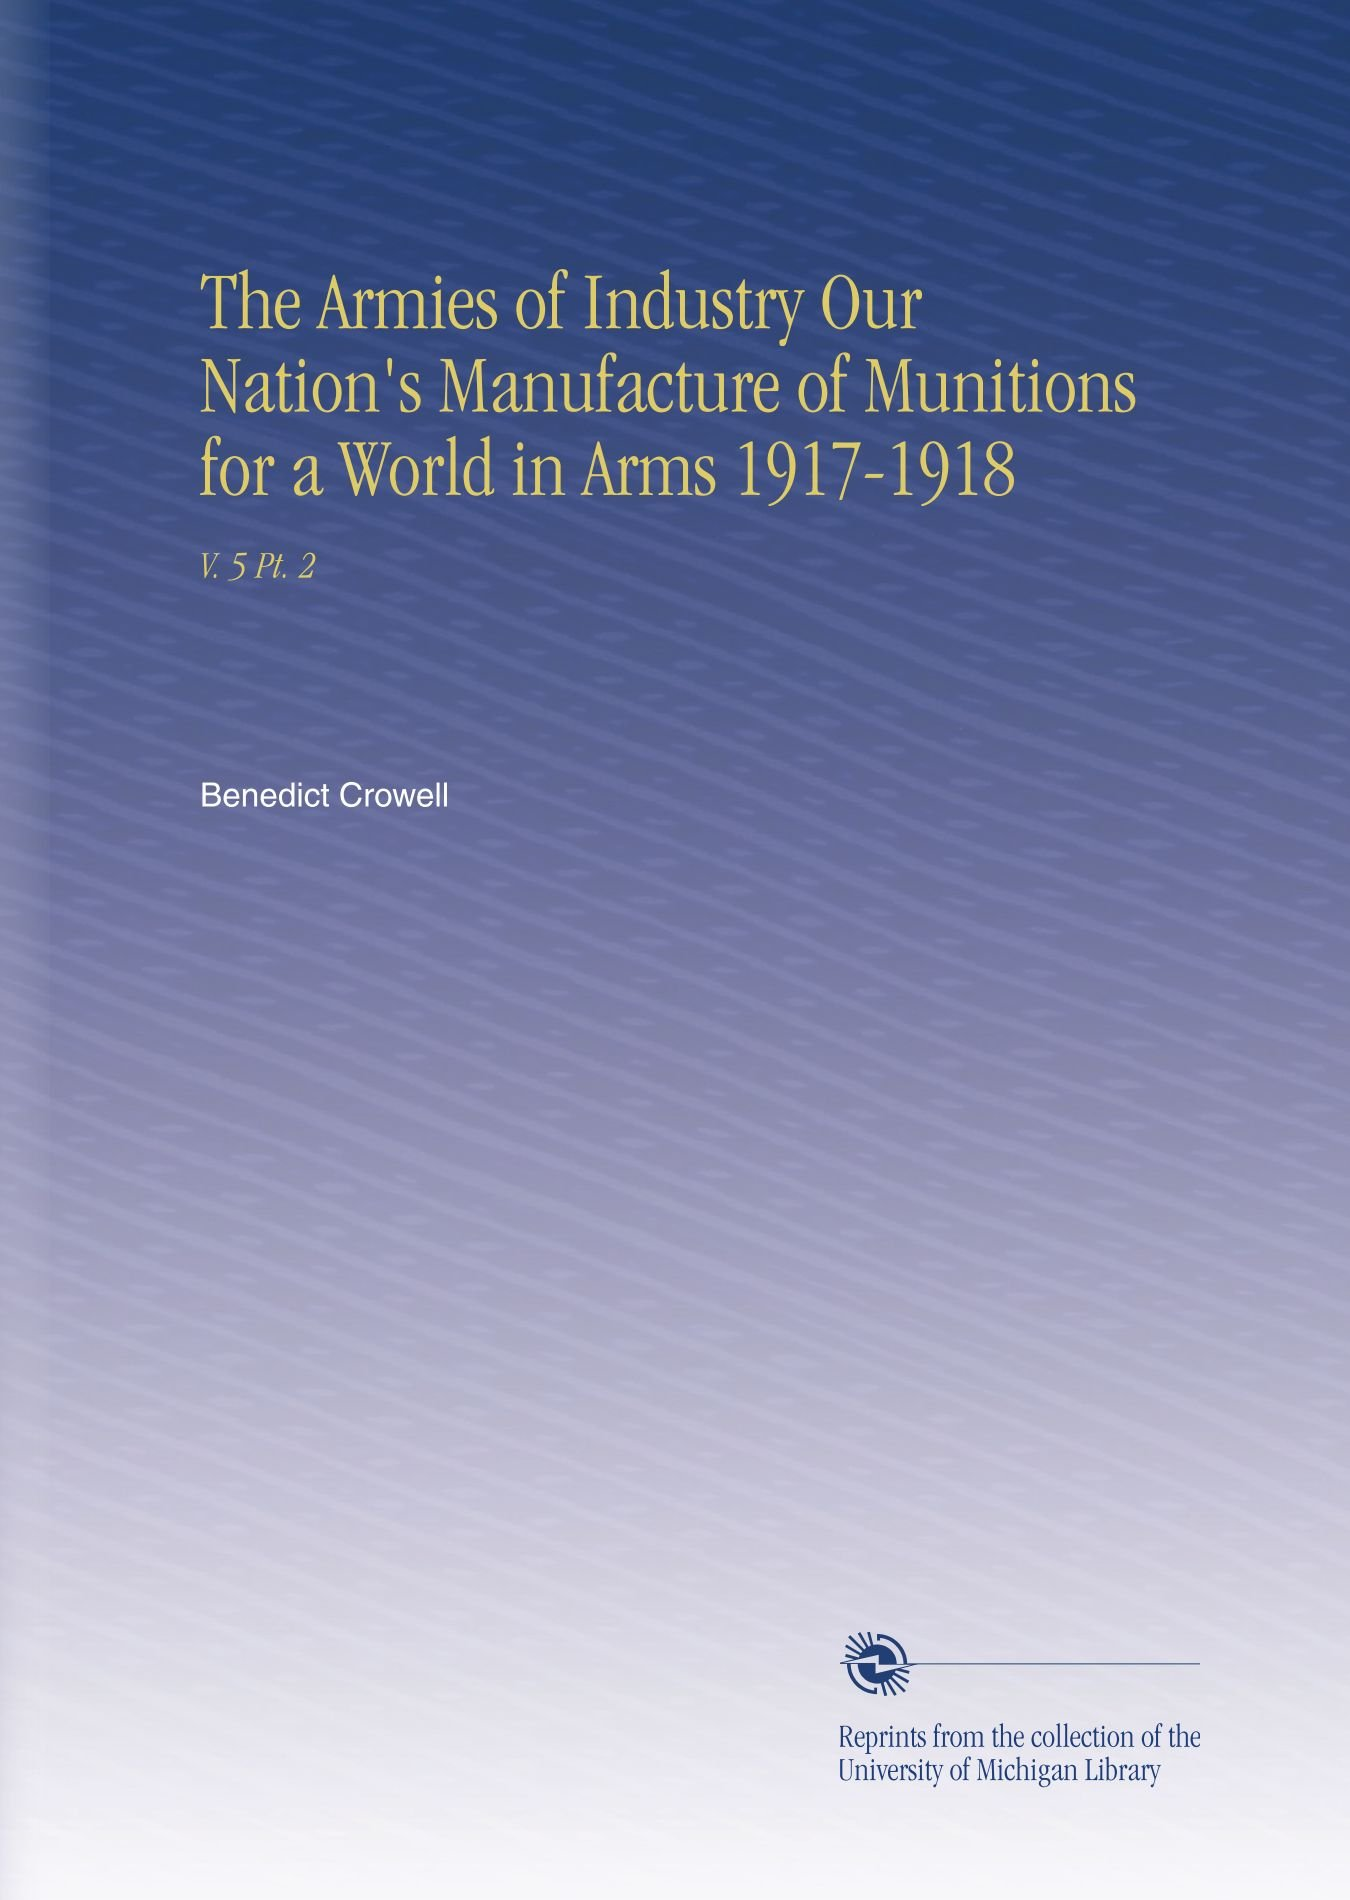 Read Online The Armies of Industry Our Nation's Manufacture of Munitions for a World in Arms 1917-1918: V. 5 Pt. 2 pdf epub